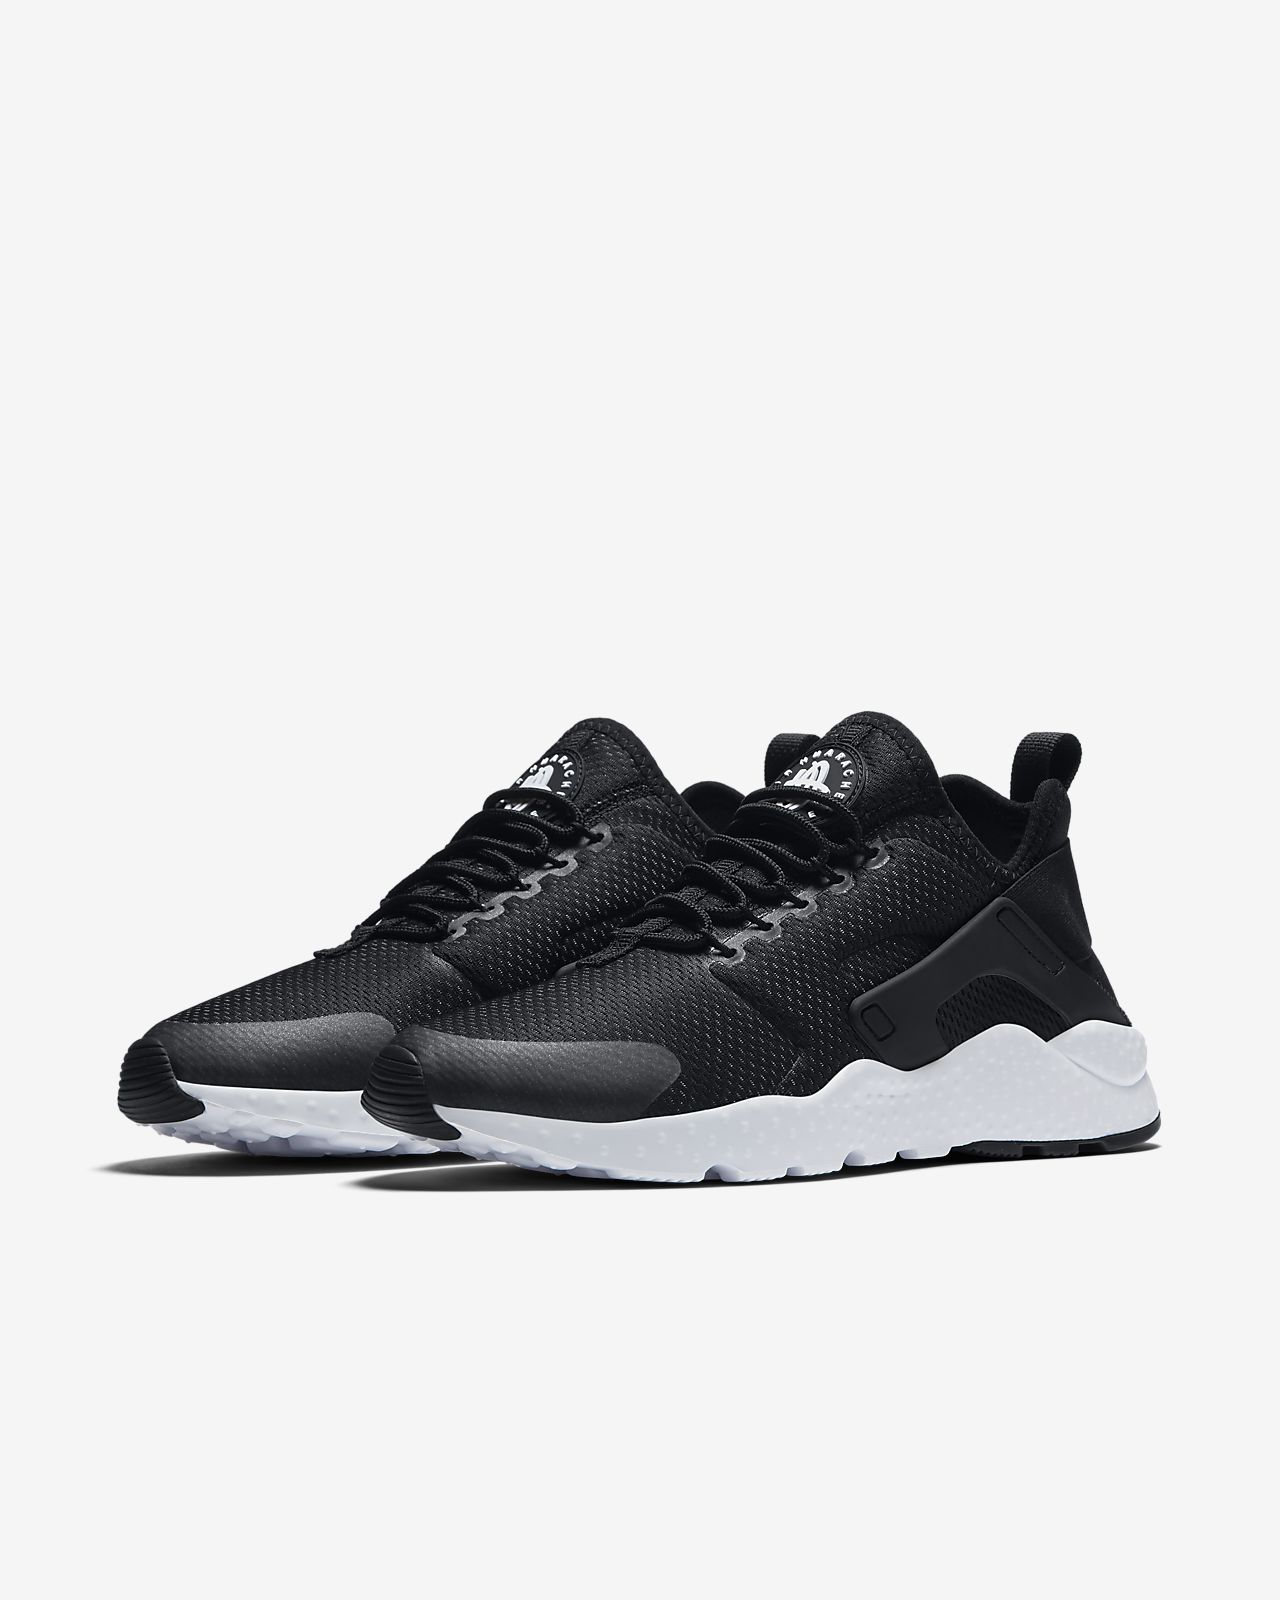 Huarache Air Nike Ultra Shoe Women's htsQrCd